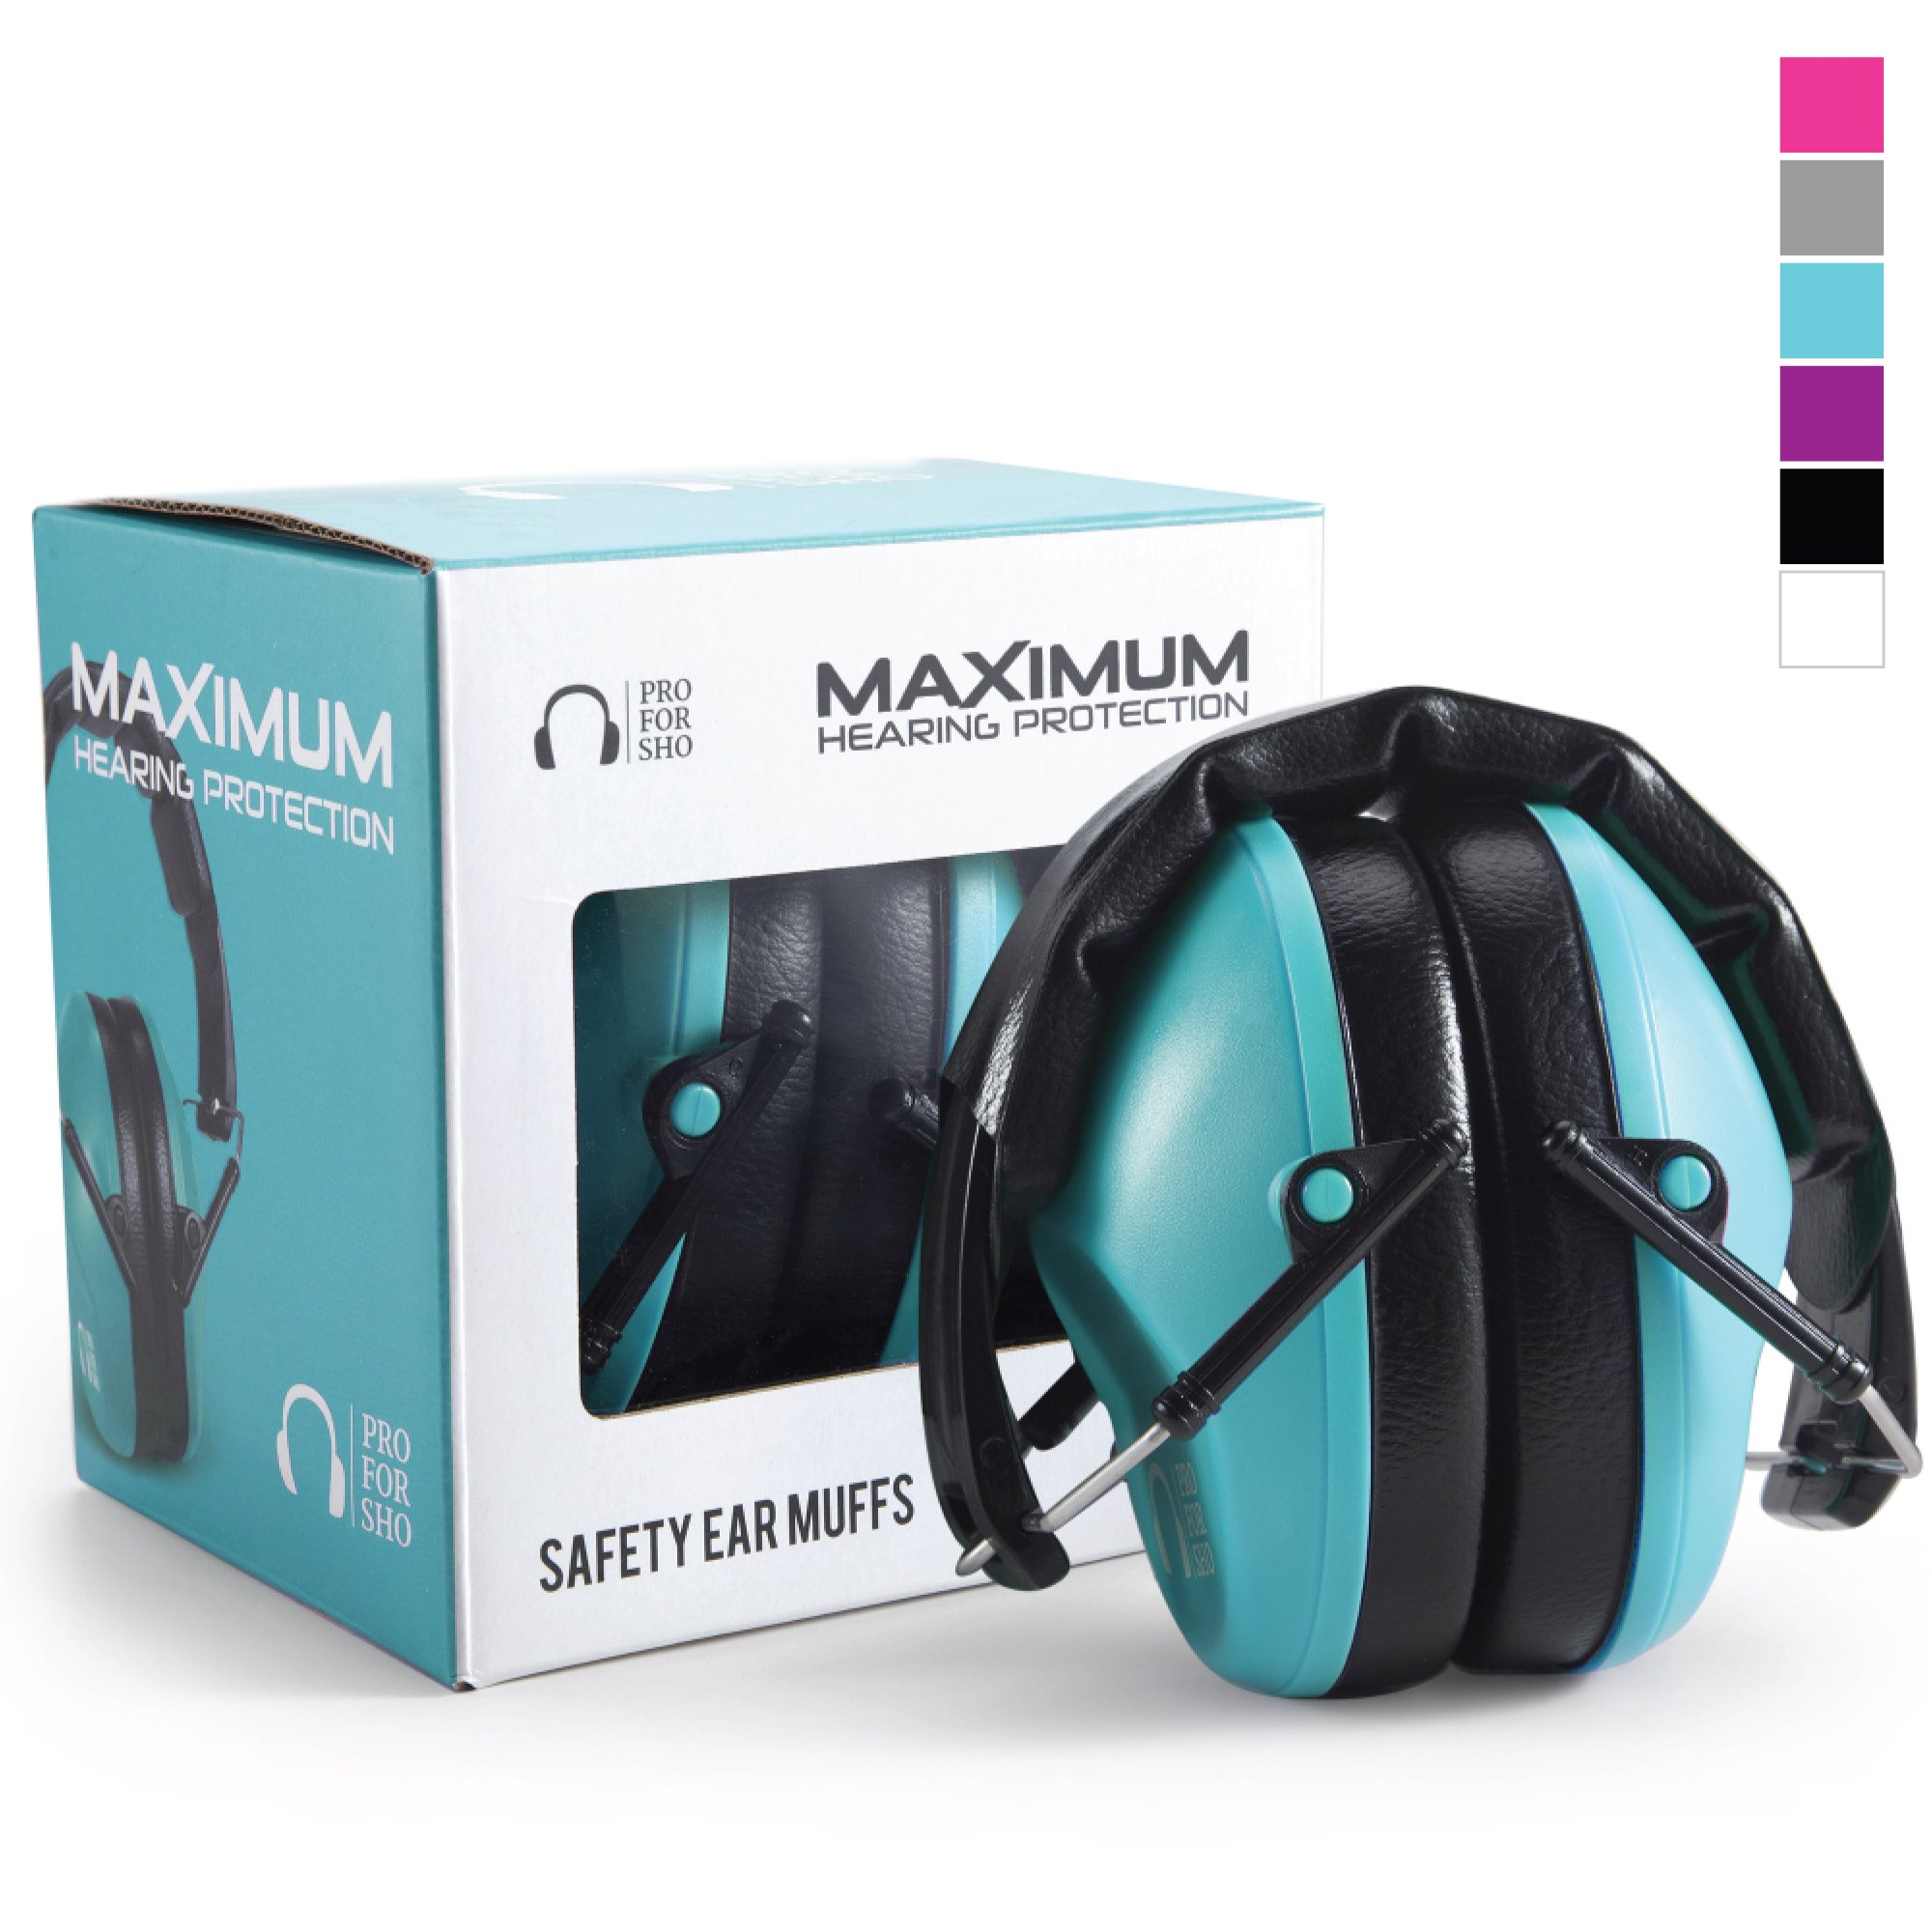 Pro For Sho 34dB Shooting Ear Protection - Special Designed Ear Muffs Lighter Weight & Maximum Hearing Protection - Standard Size, Teal by Pro For Sho